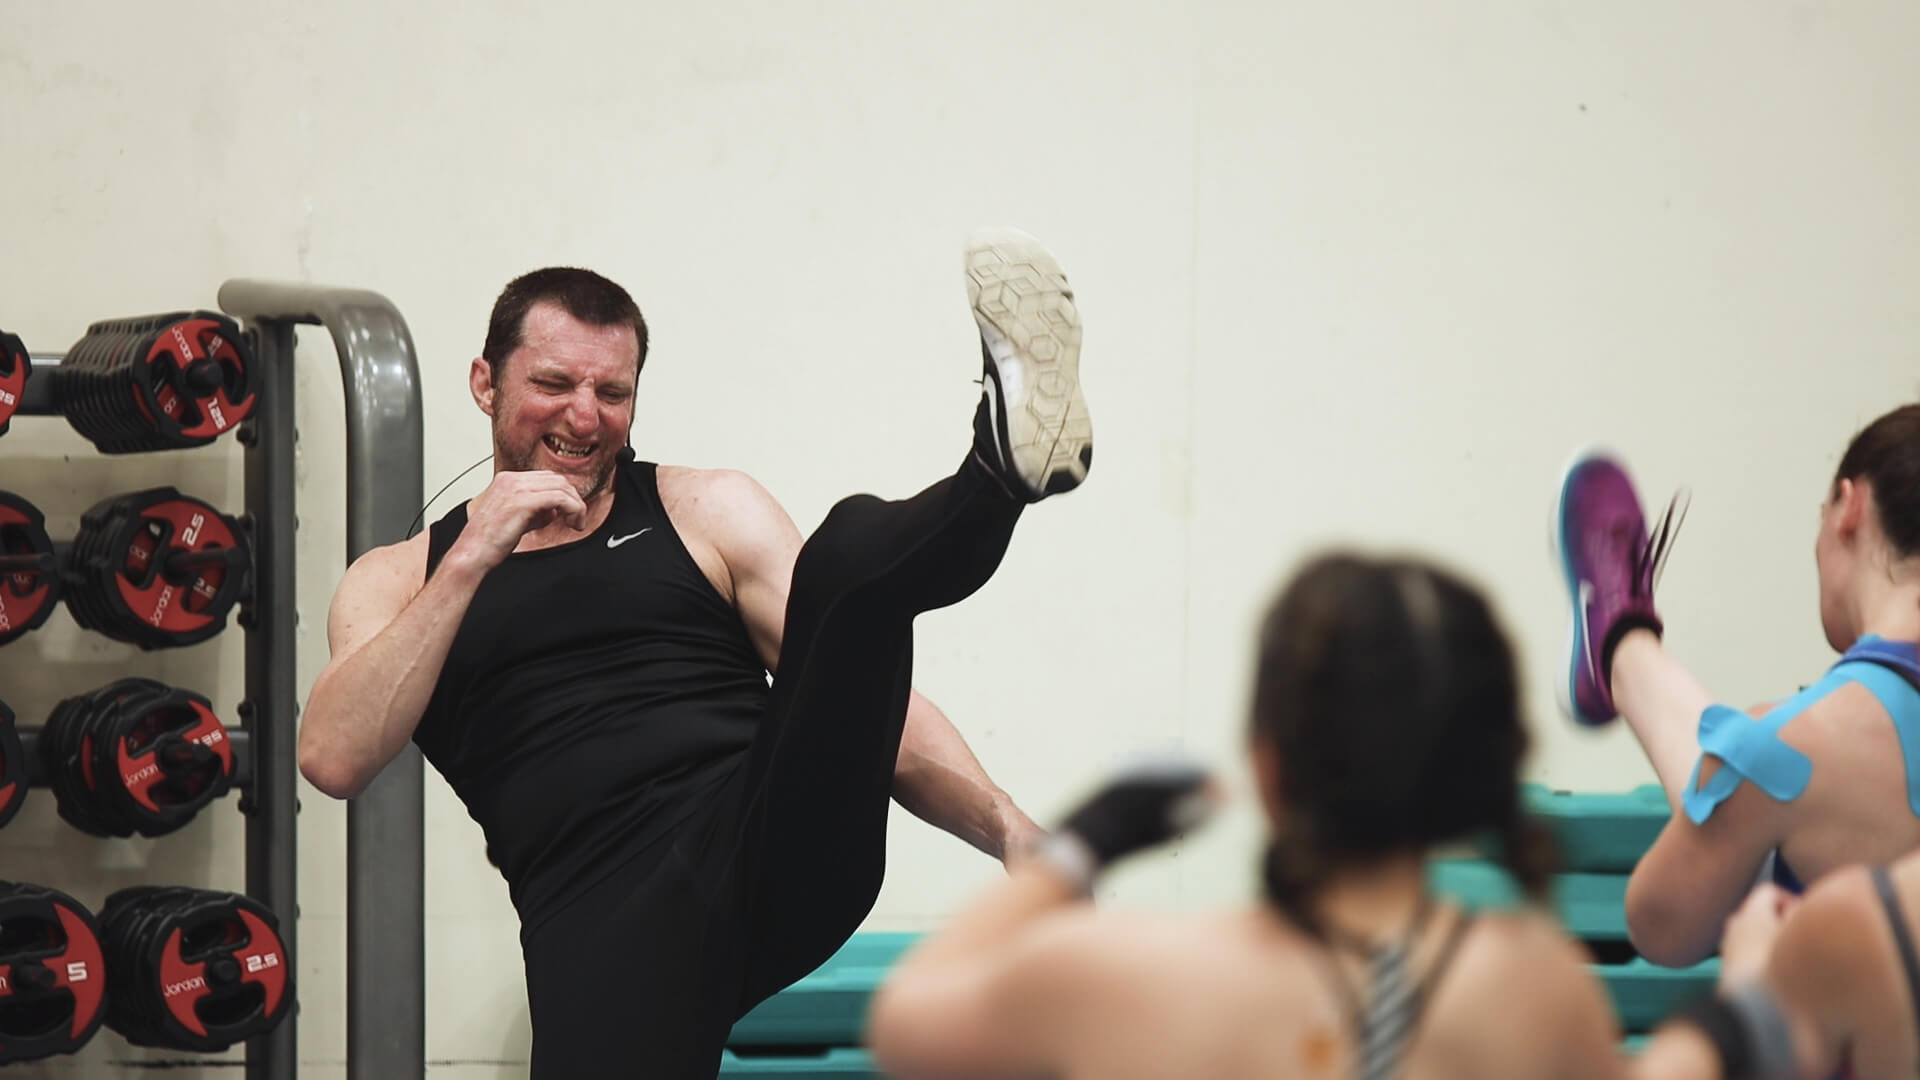 Body Combat Instructor Dave Smith was one of the instructors leading the marathon